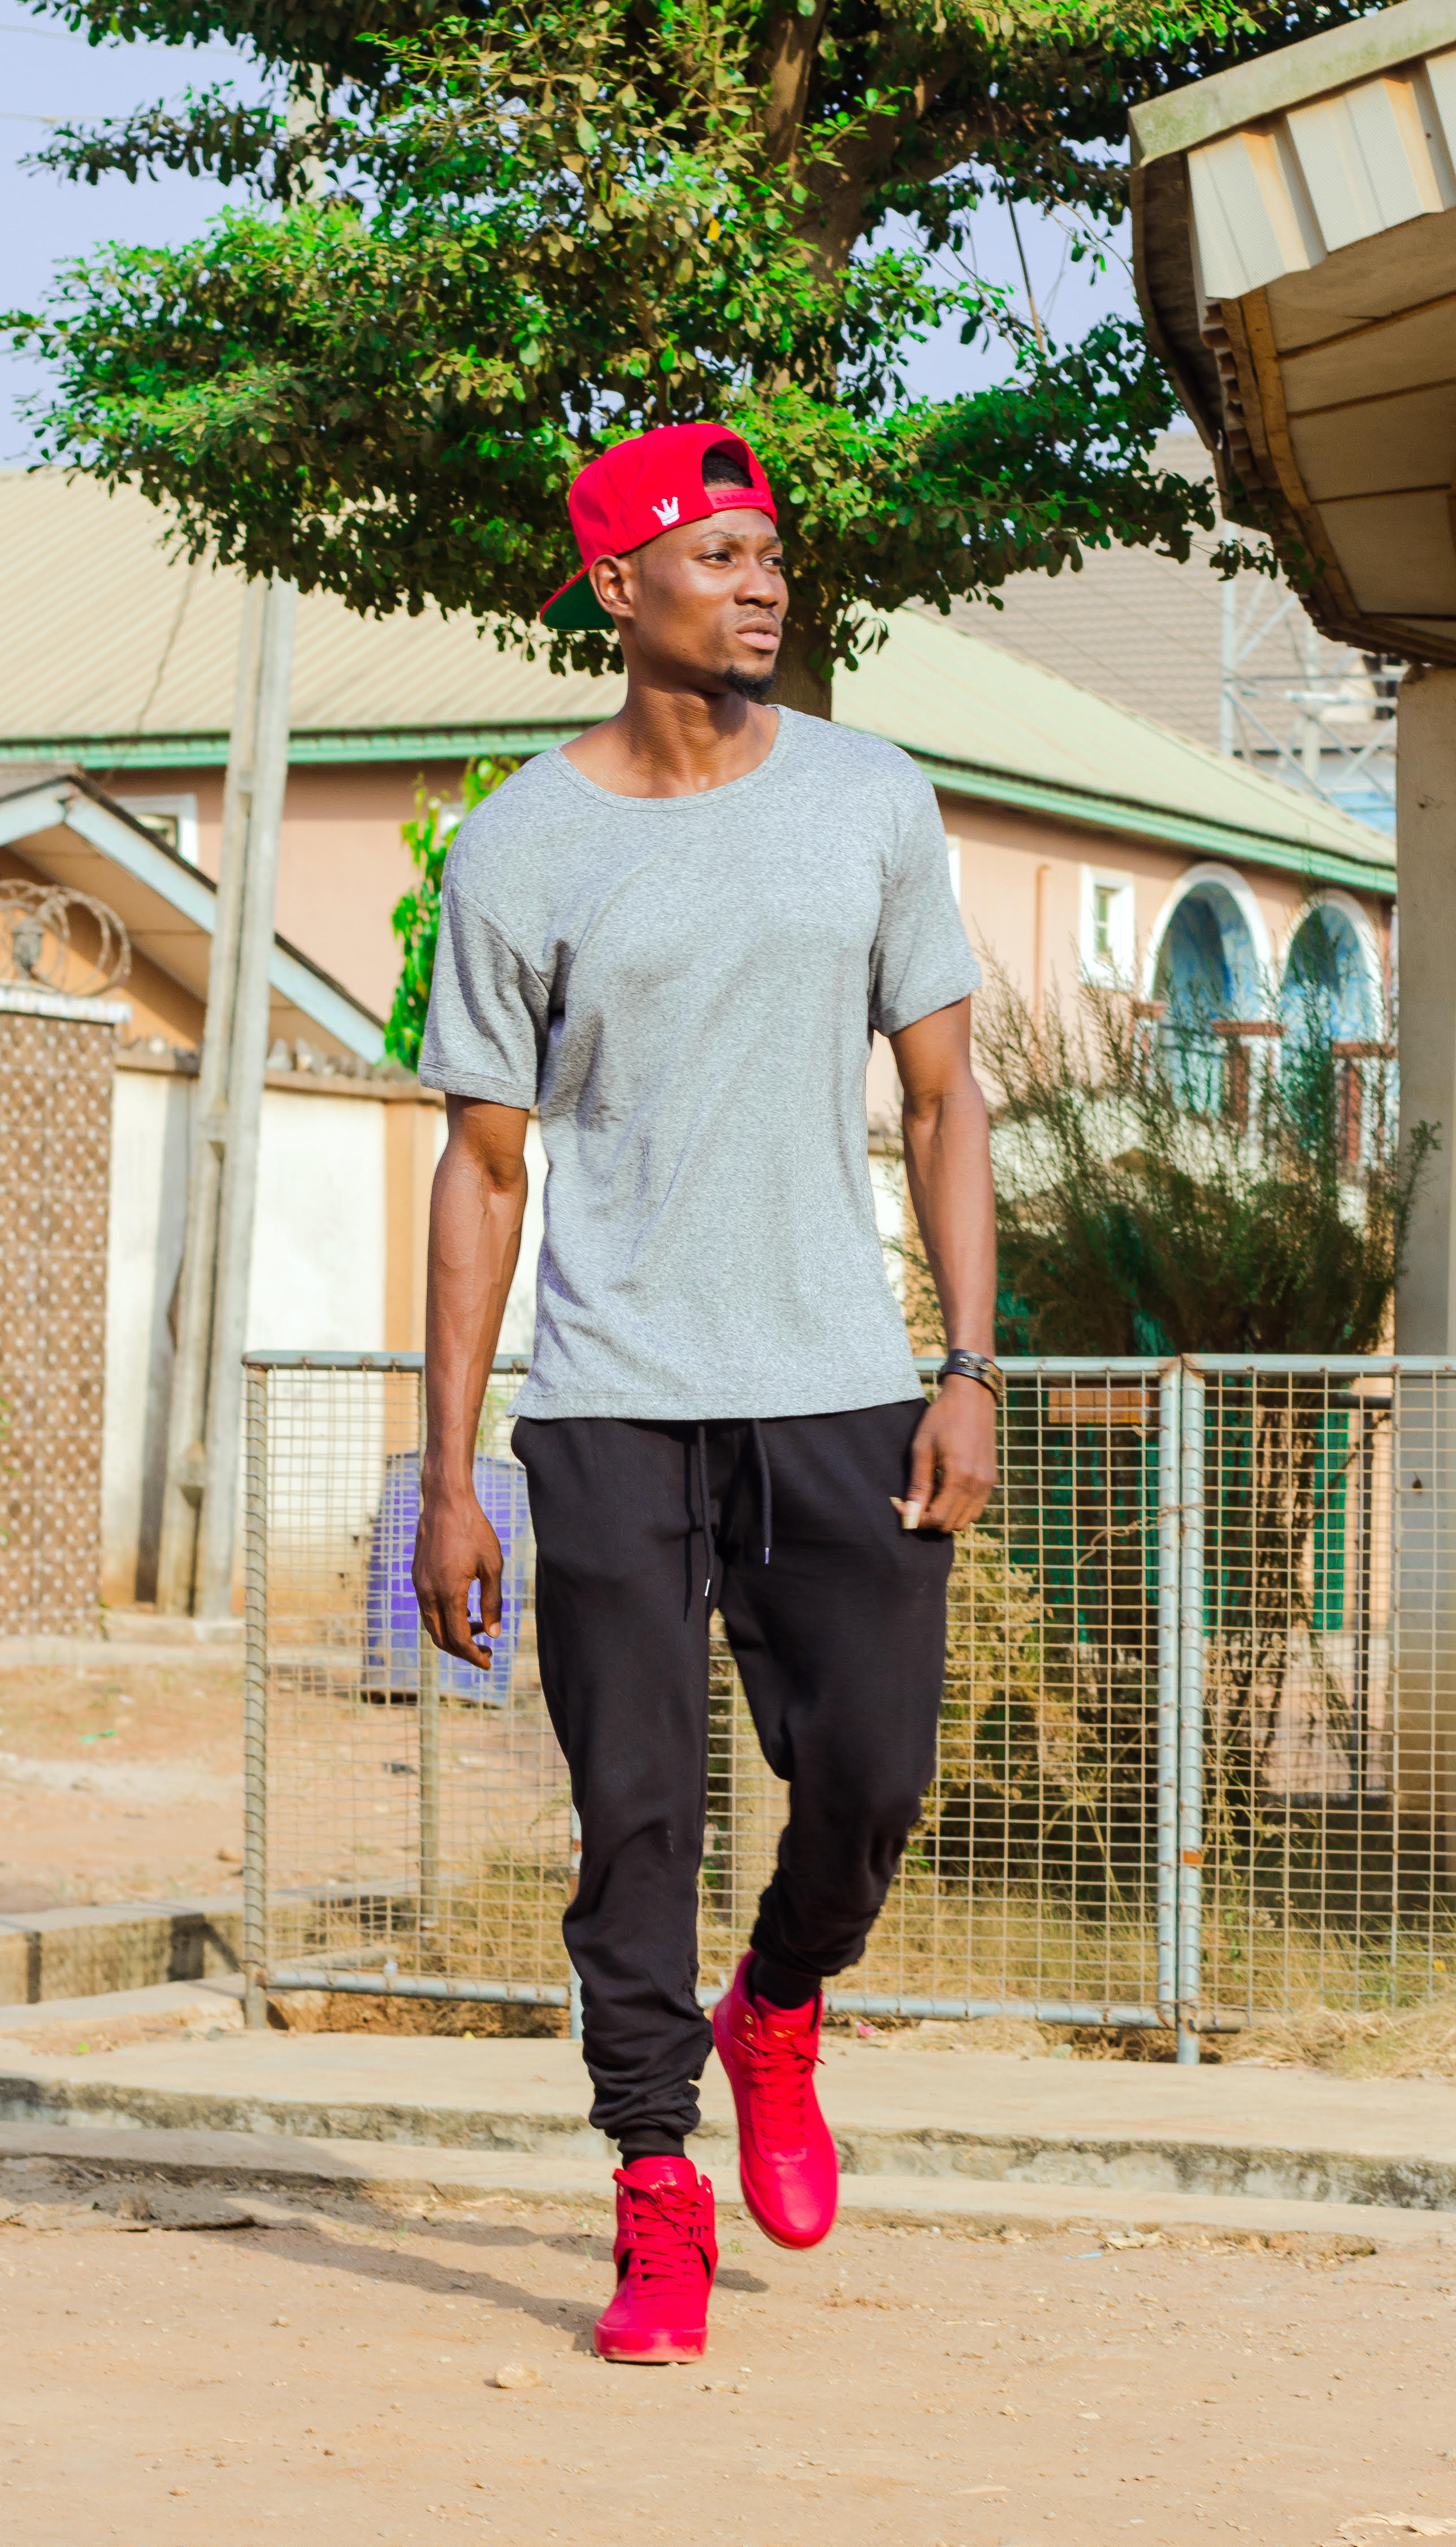 Elawe Is A Nigerian Based Fashion Clothing Brand Founded By Elohor Sigbenu Graduate Of The University Benin And Attended Zaris Stlye